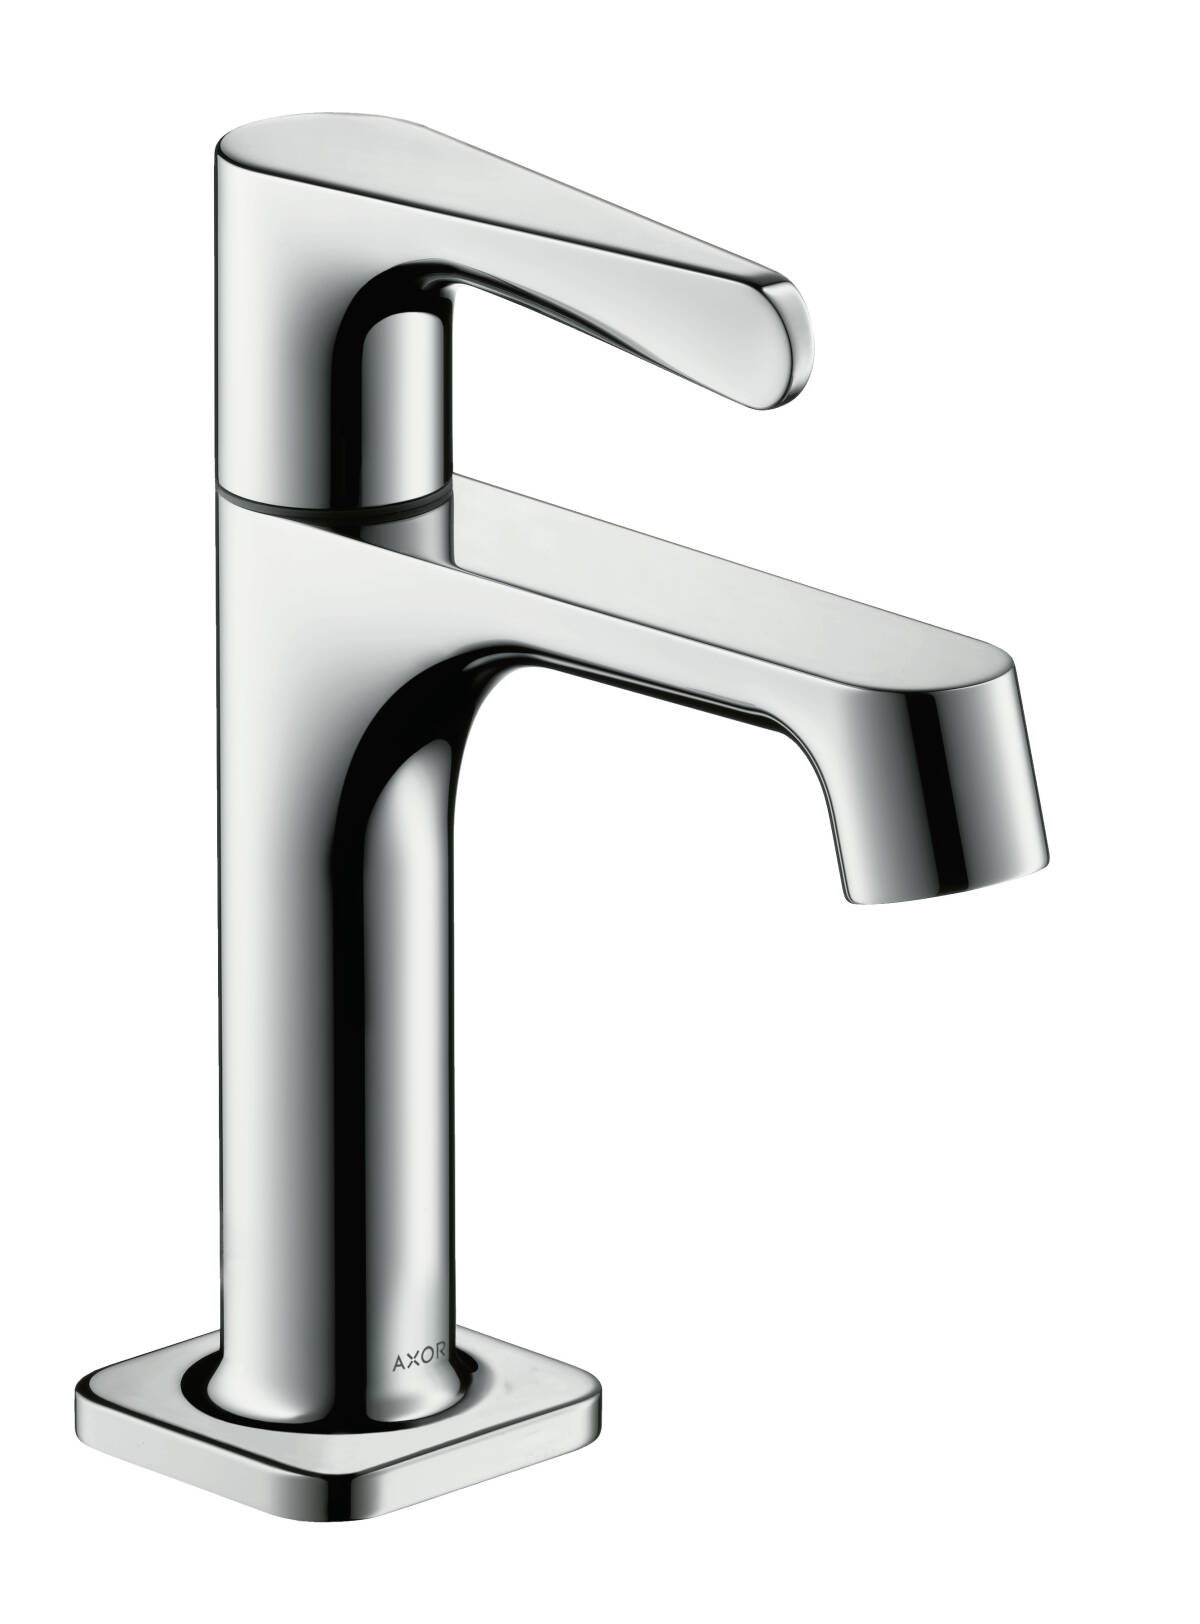 Pillar tap 90 without waste set, Chrome, 34130000